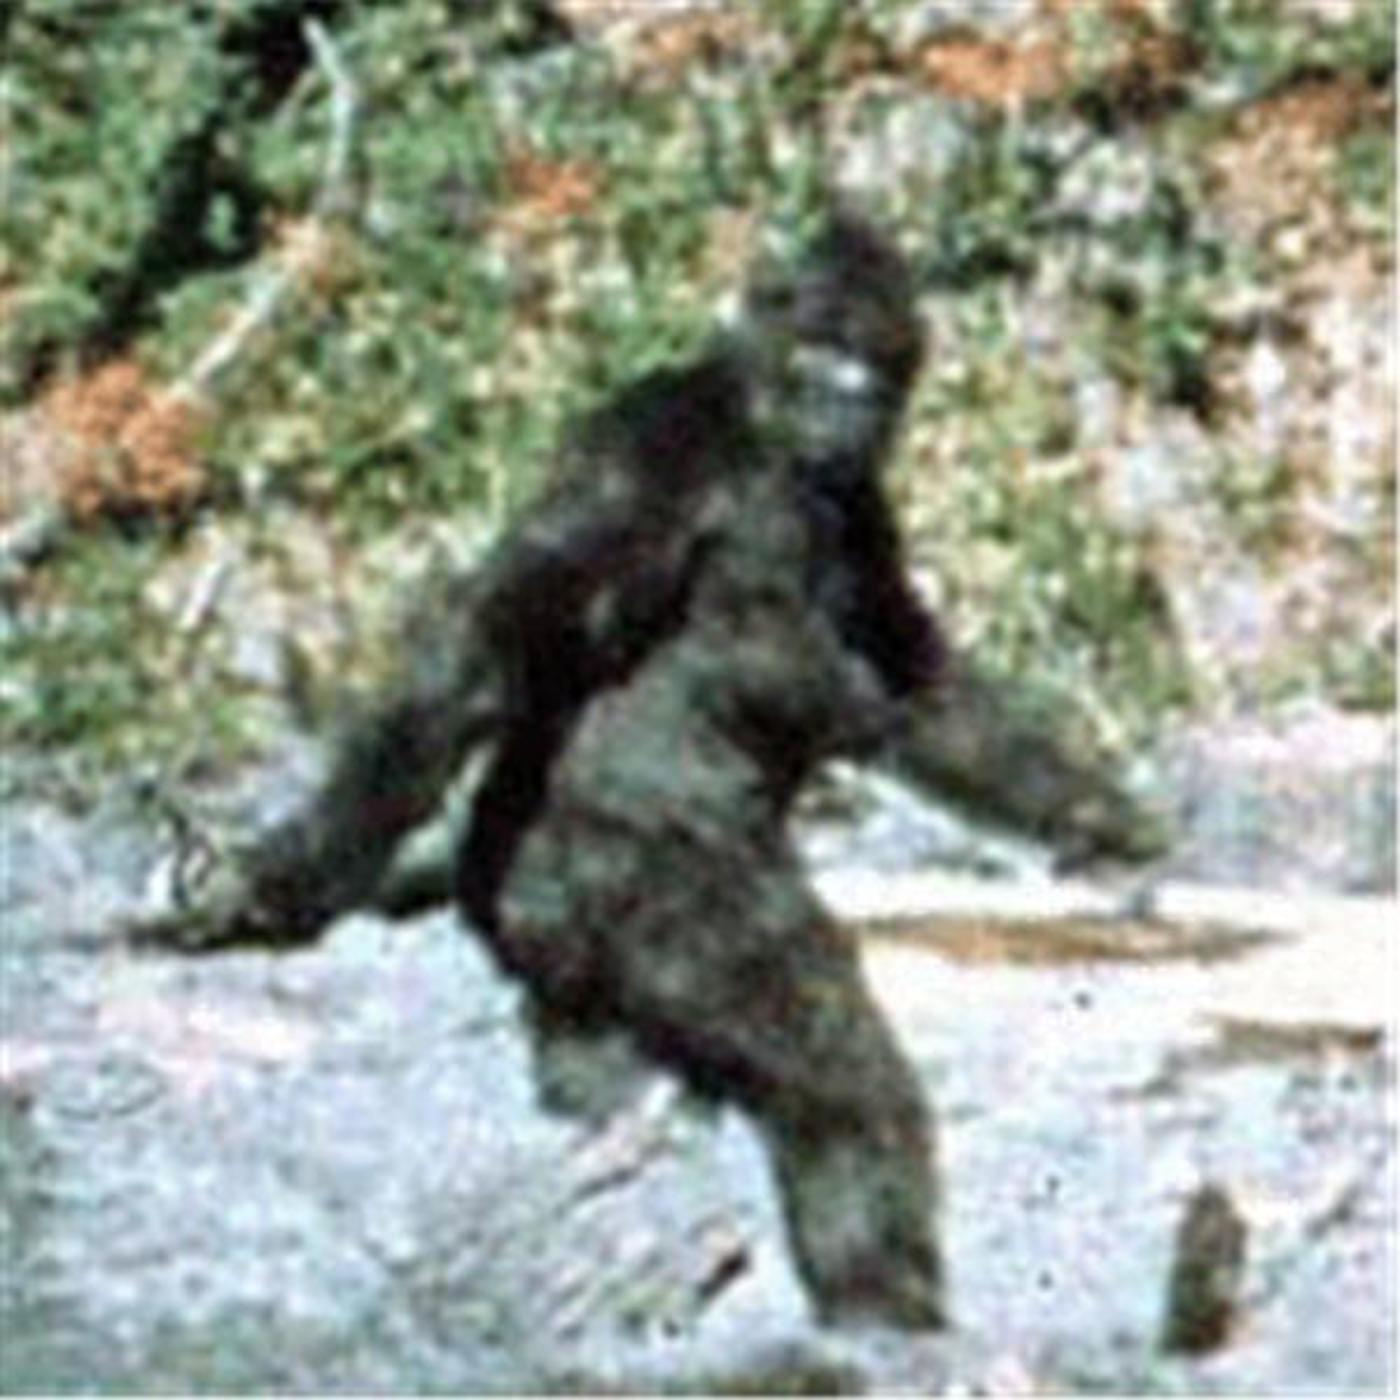 Bigfoot Ground Zero - Sasquatch on the Hunting Grounds